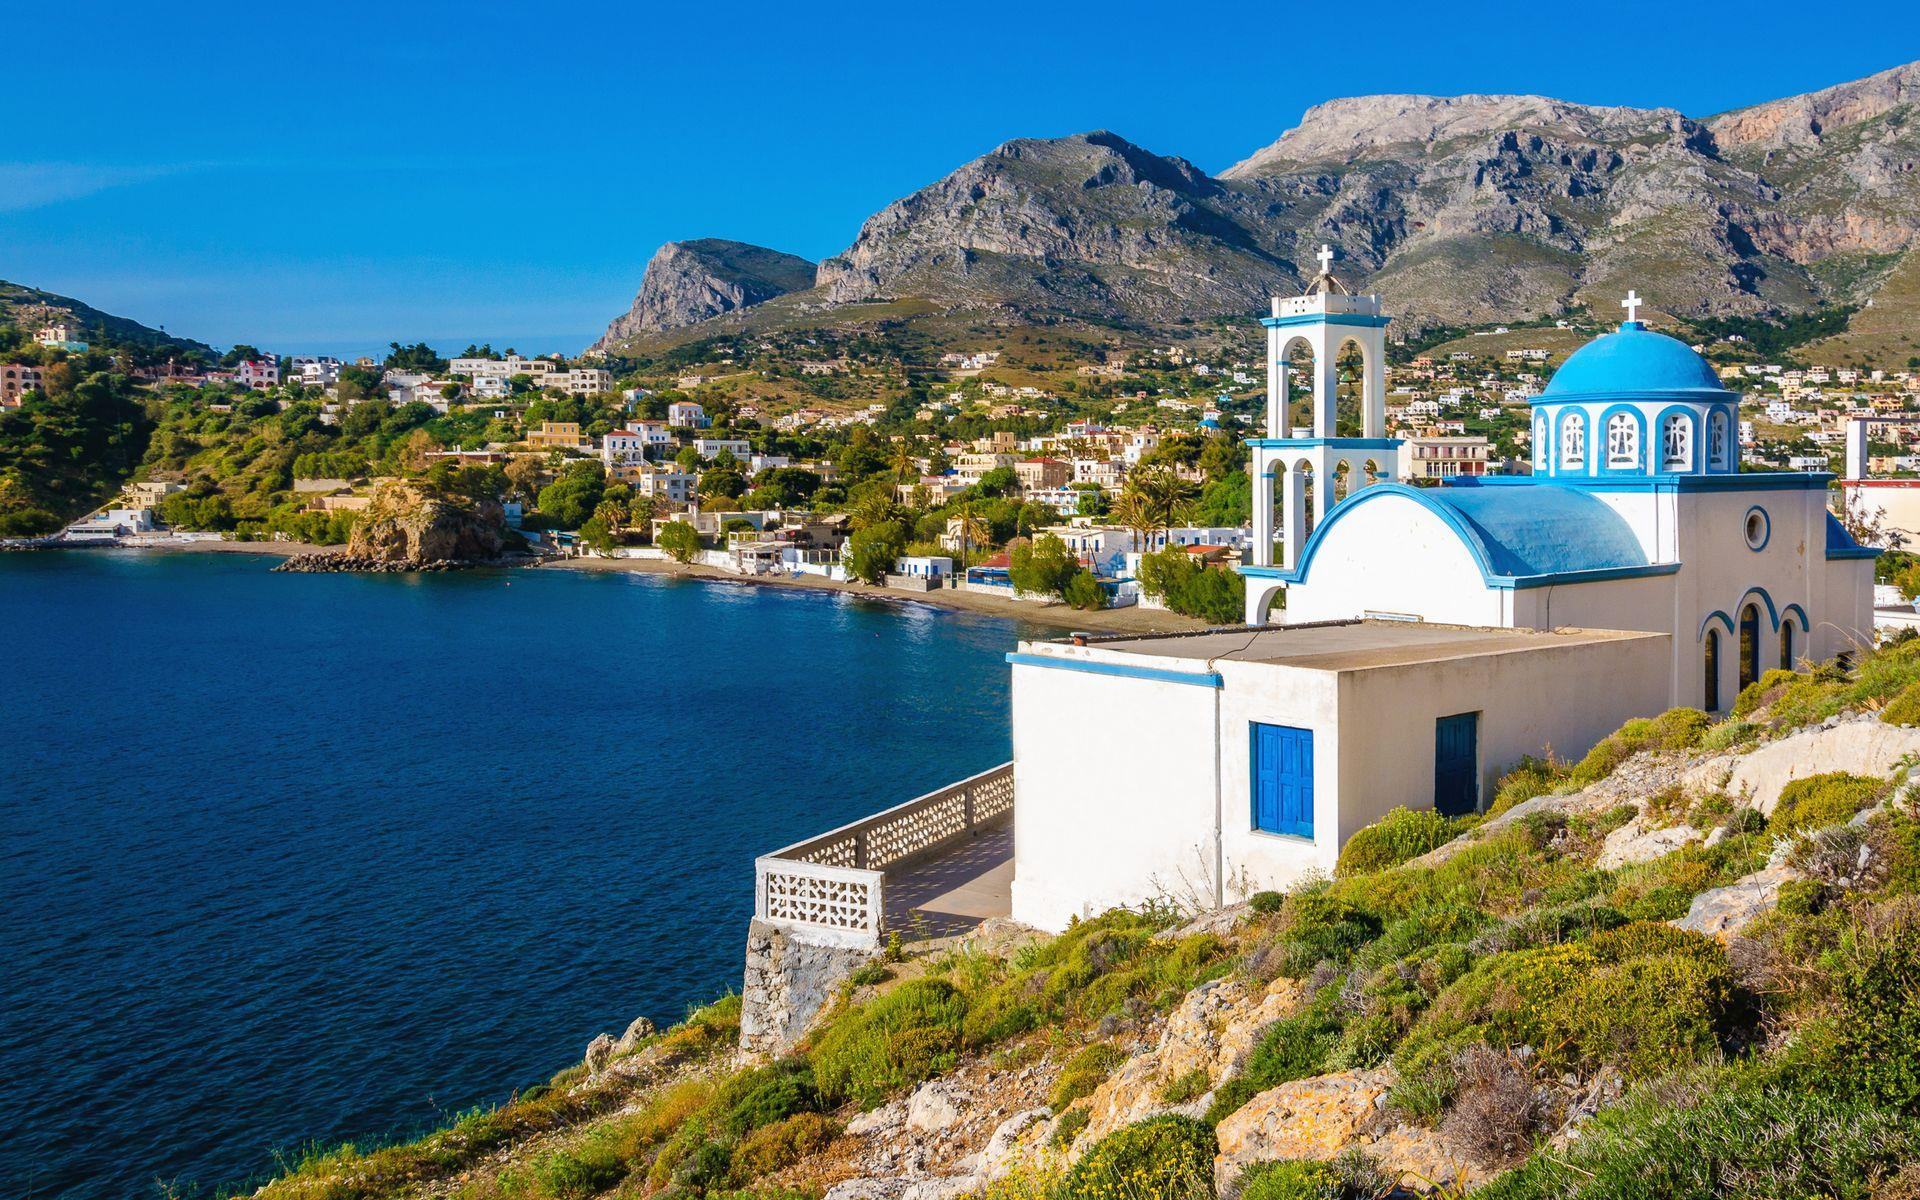 Kalymnos Island, the Dodecanese Islands, Greece